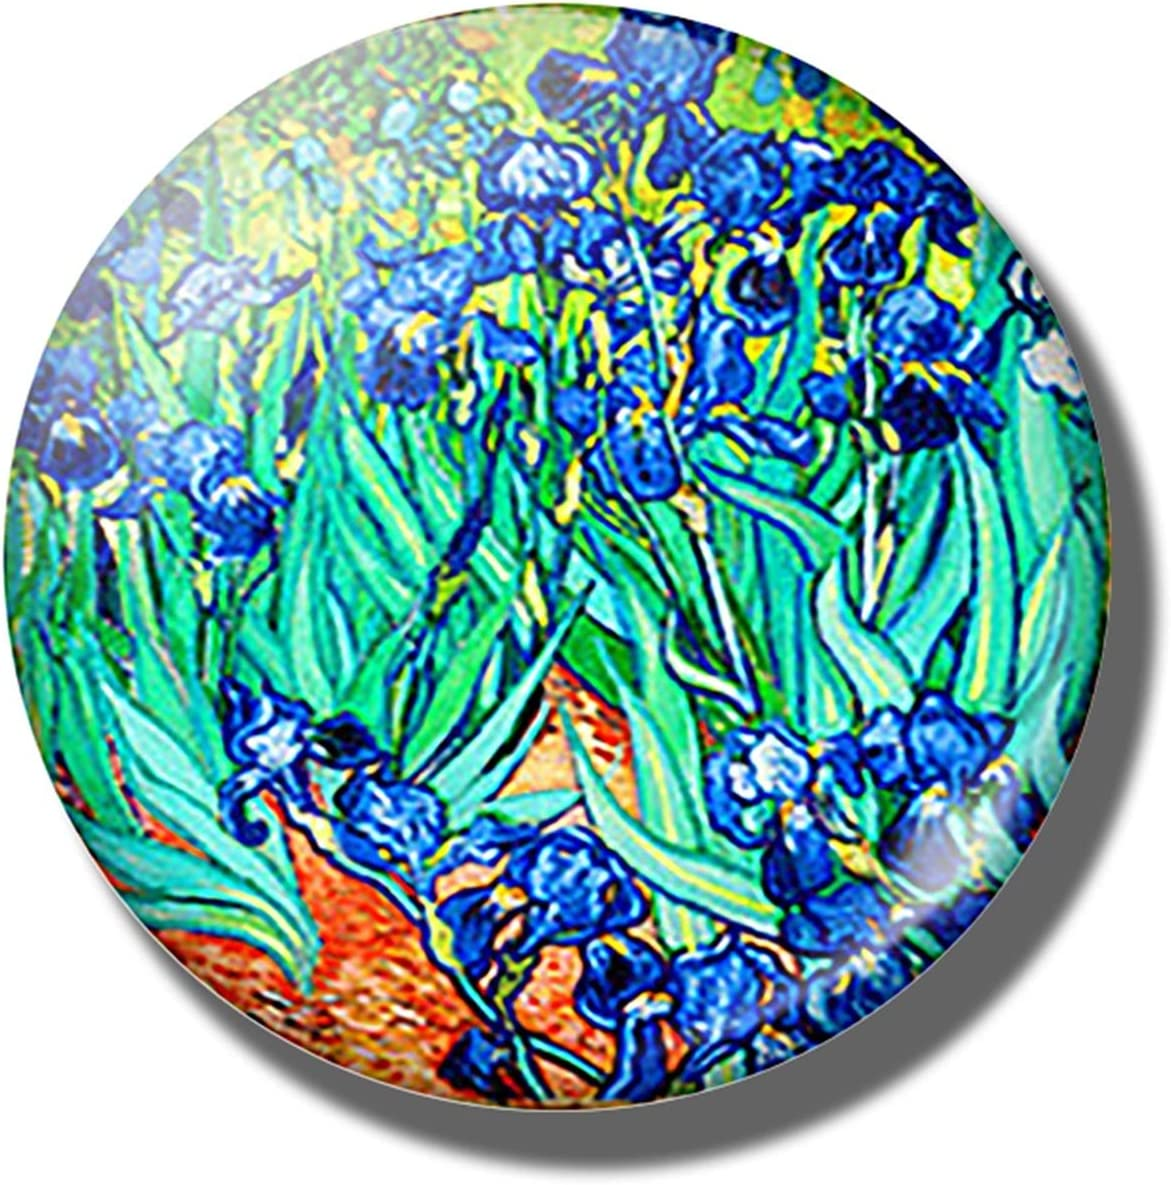 Refrigerator specialty shop Magnets Art Painting Glass Round Flower Raleigh Mall Patte Retro